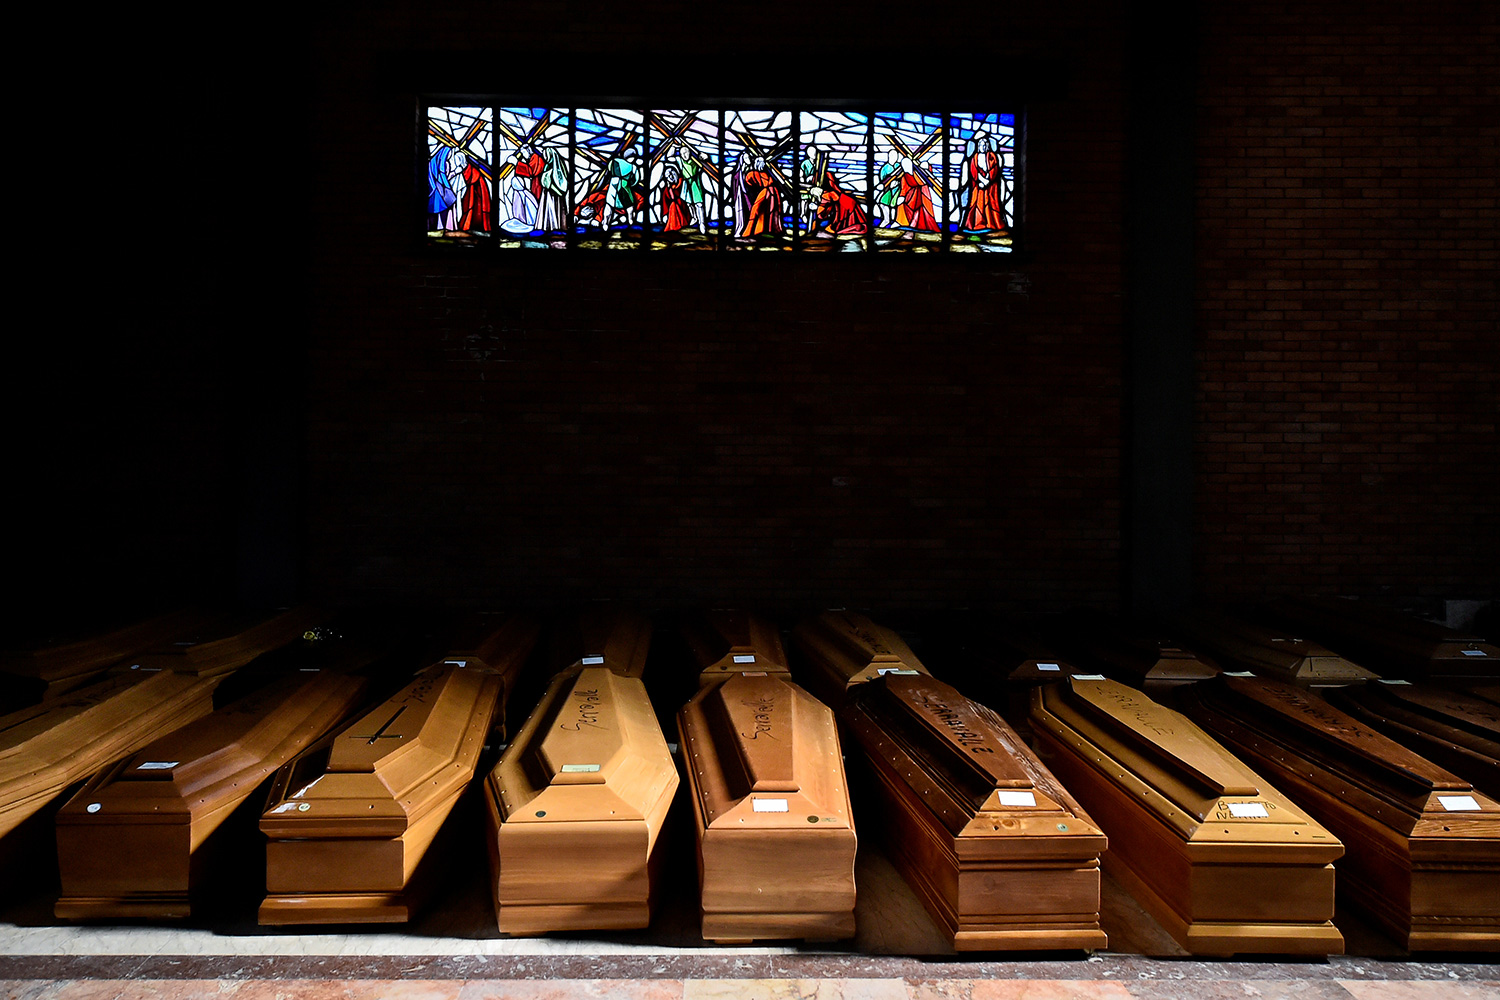 The image shows a huge number of plain coffins in a dimly lit corner of a church beneath a stained glass.